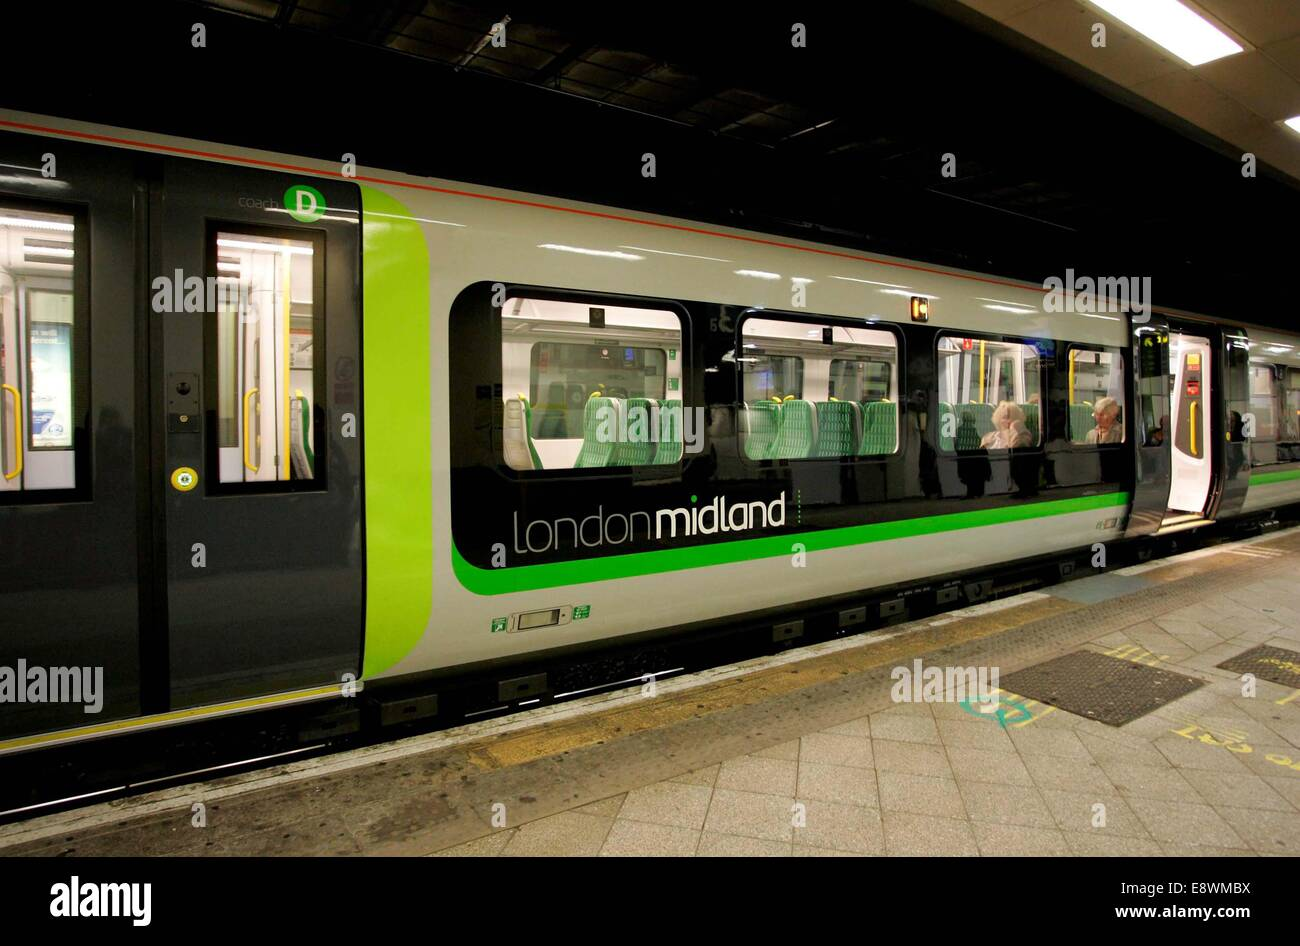 A London Midland branded train at Birmingham's New Street station. - Stock Image